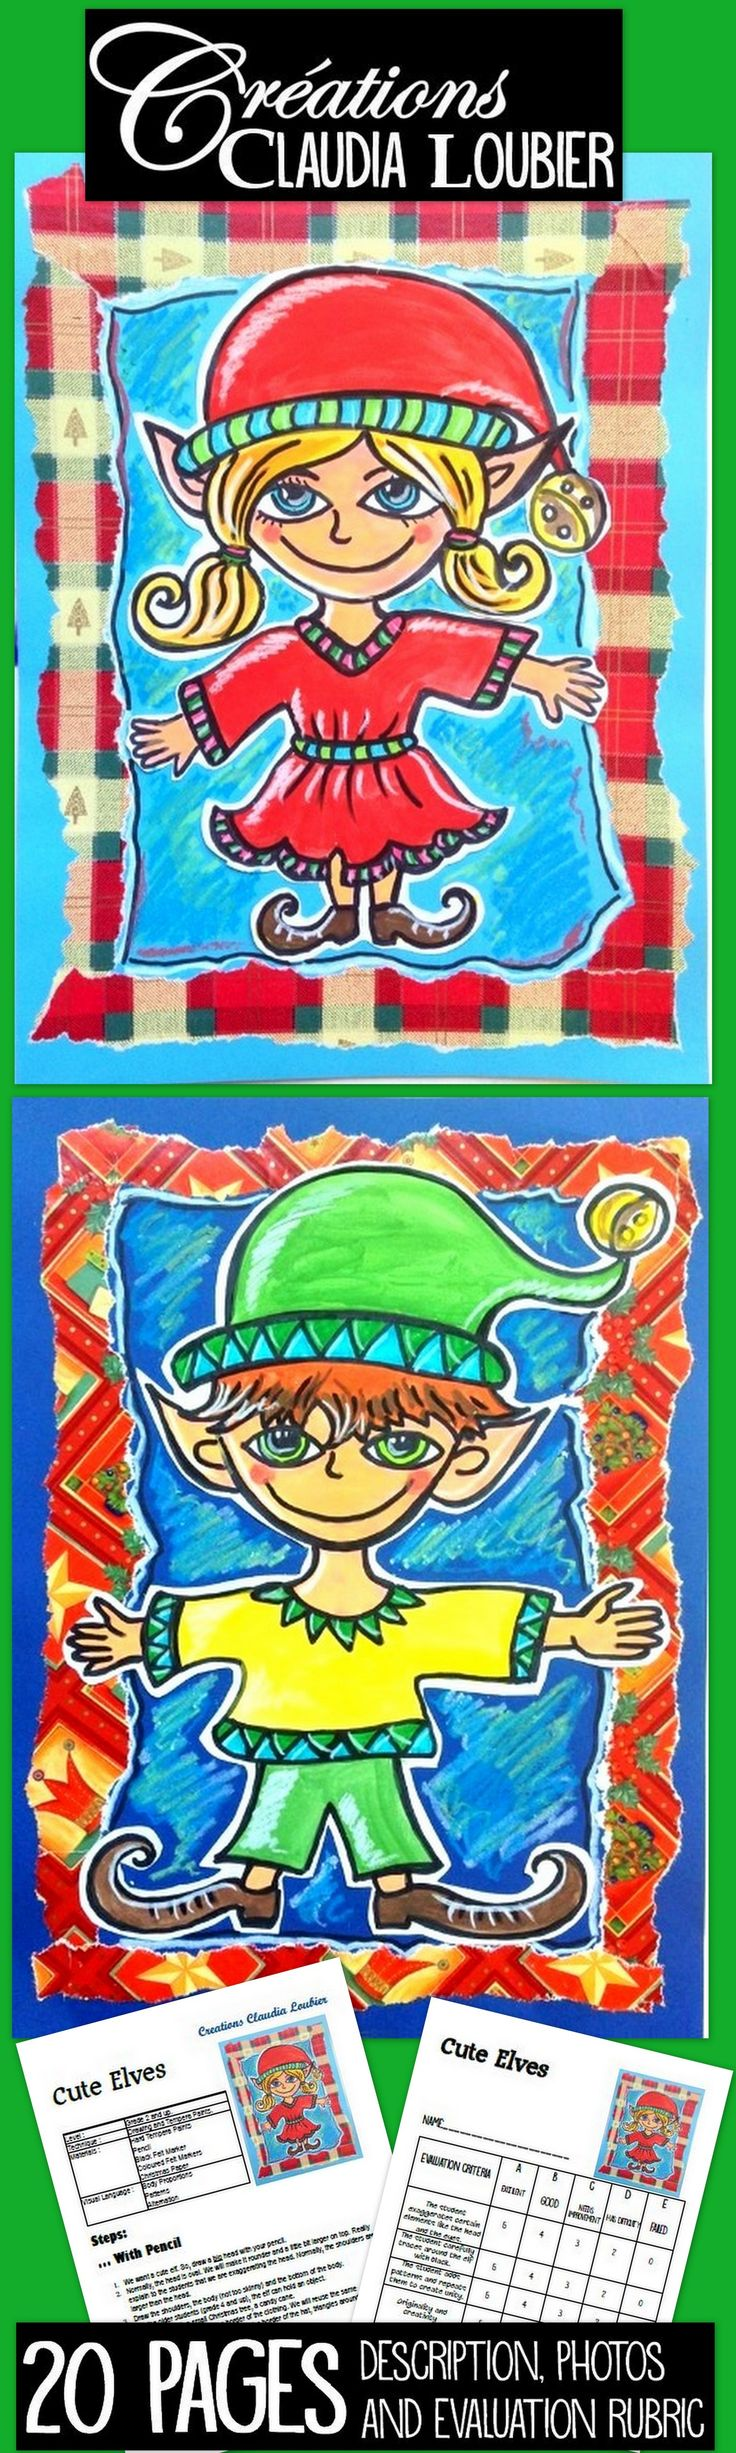 Project for Grade 2 and up. I do it with my grade 2 classes. You will need hard tempera paints, pencils and Christmas paper! Makes a very beautiful card. Step by step photos to guide you. Evaluation rubric included.